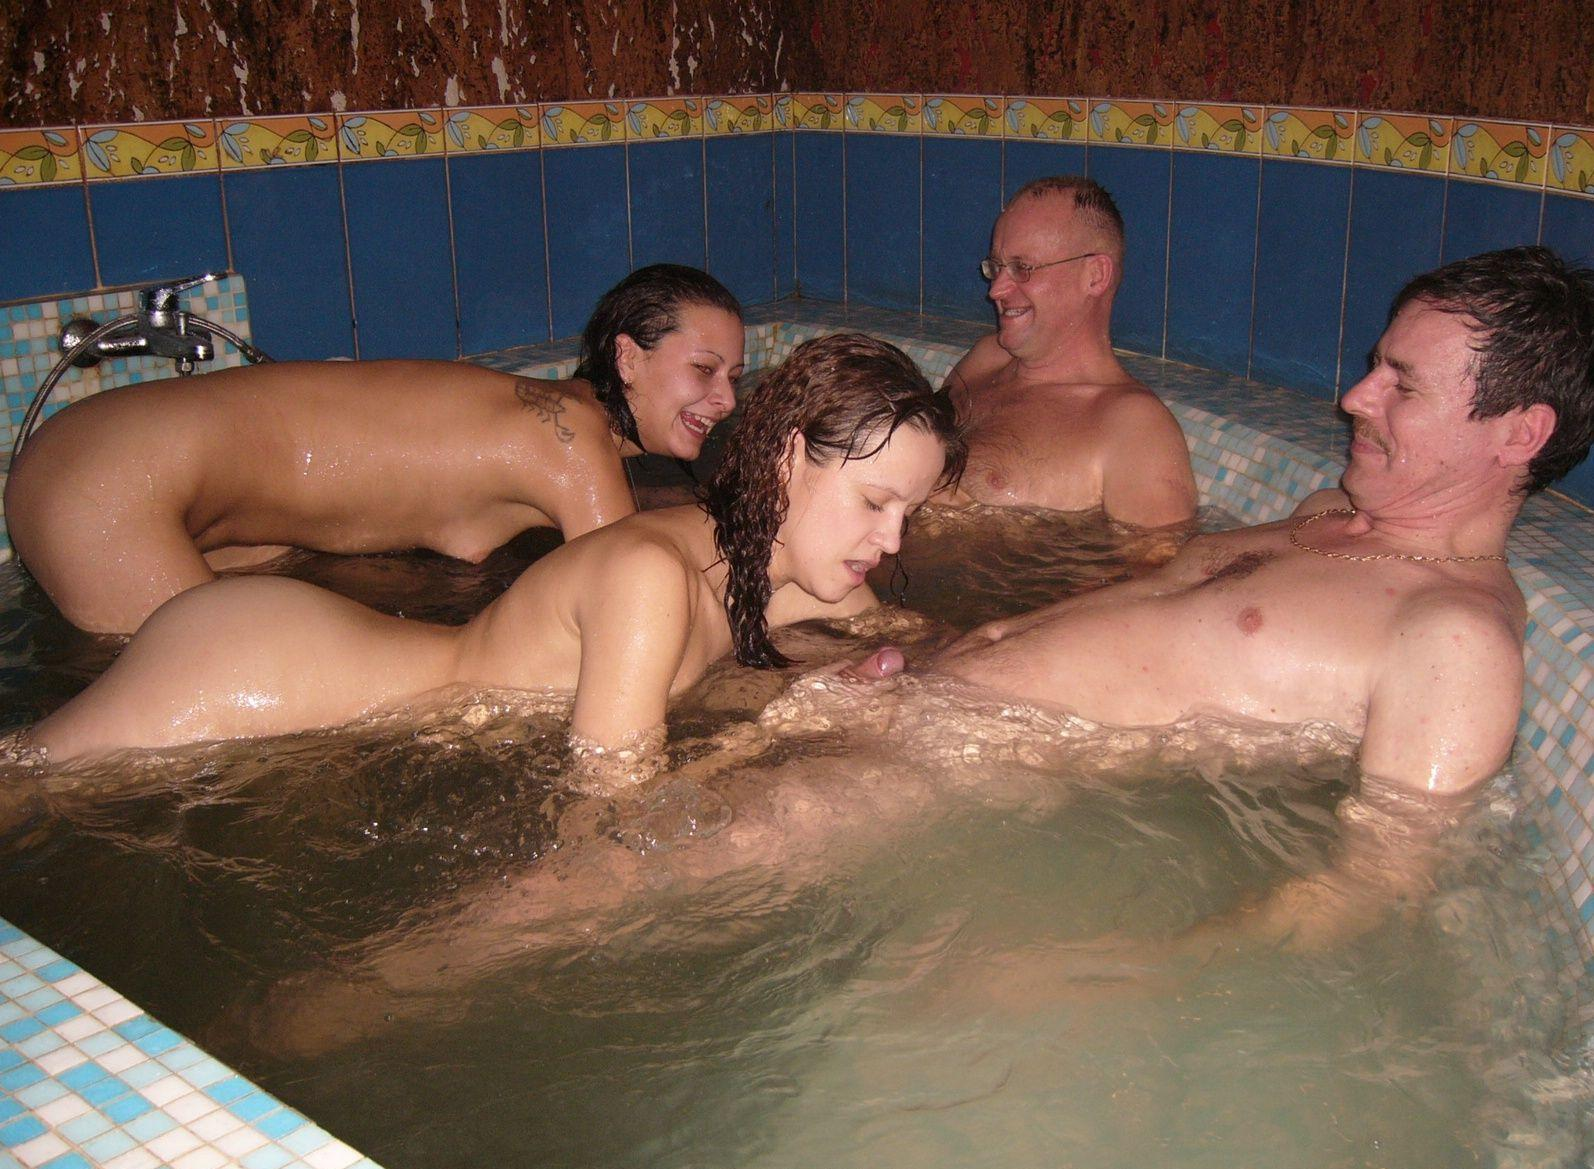 ready help you, amateur bisexual cuckold husband threesome not clear